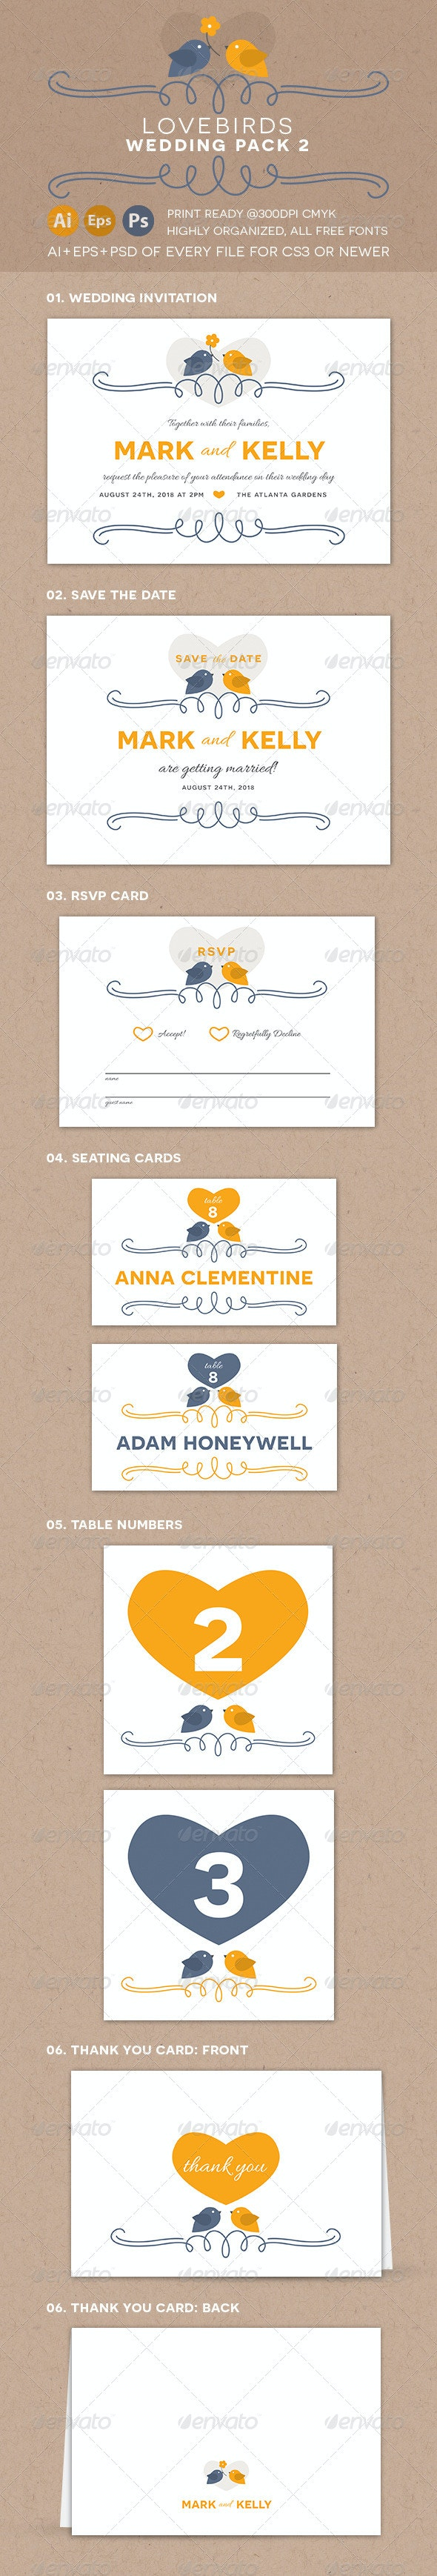 Lovebirds Wedding Pack 2 - Weddings Cards & Invites